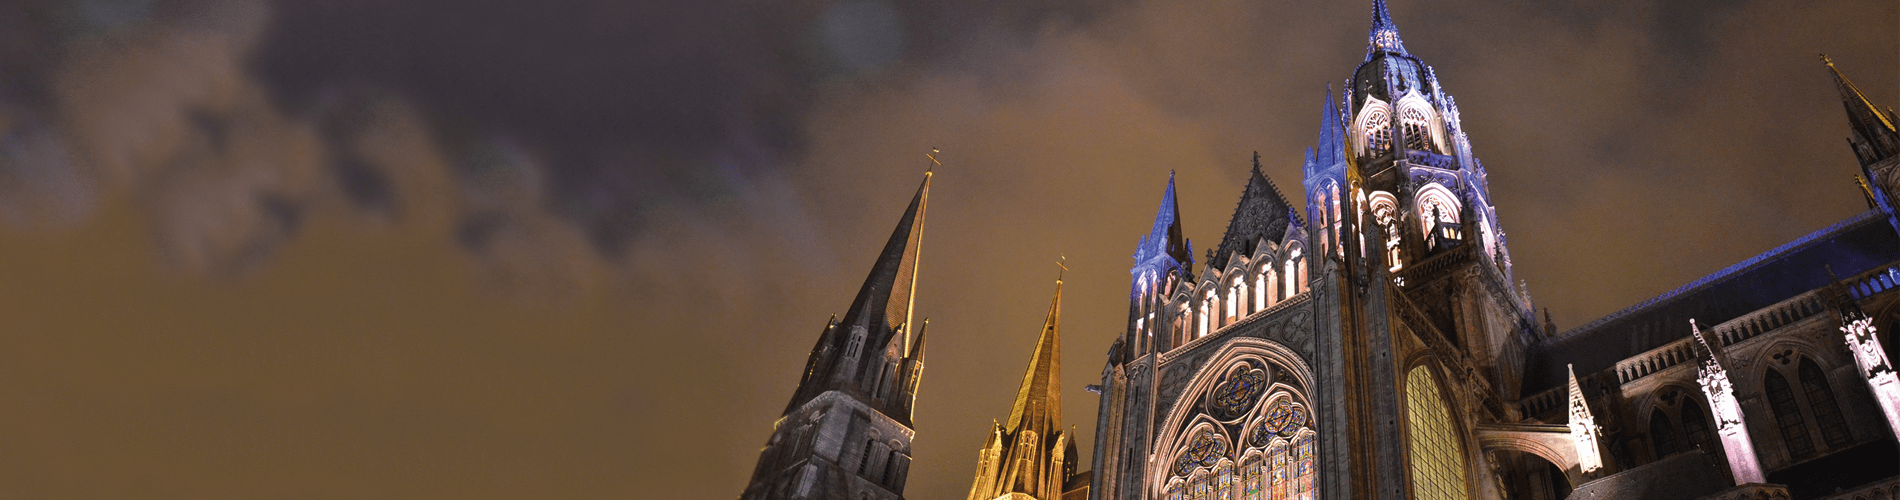 FrenchChristmas_BayeuxCathedral_1900x500